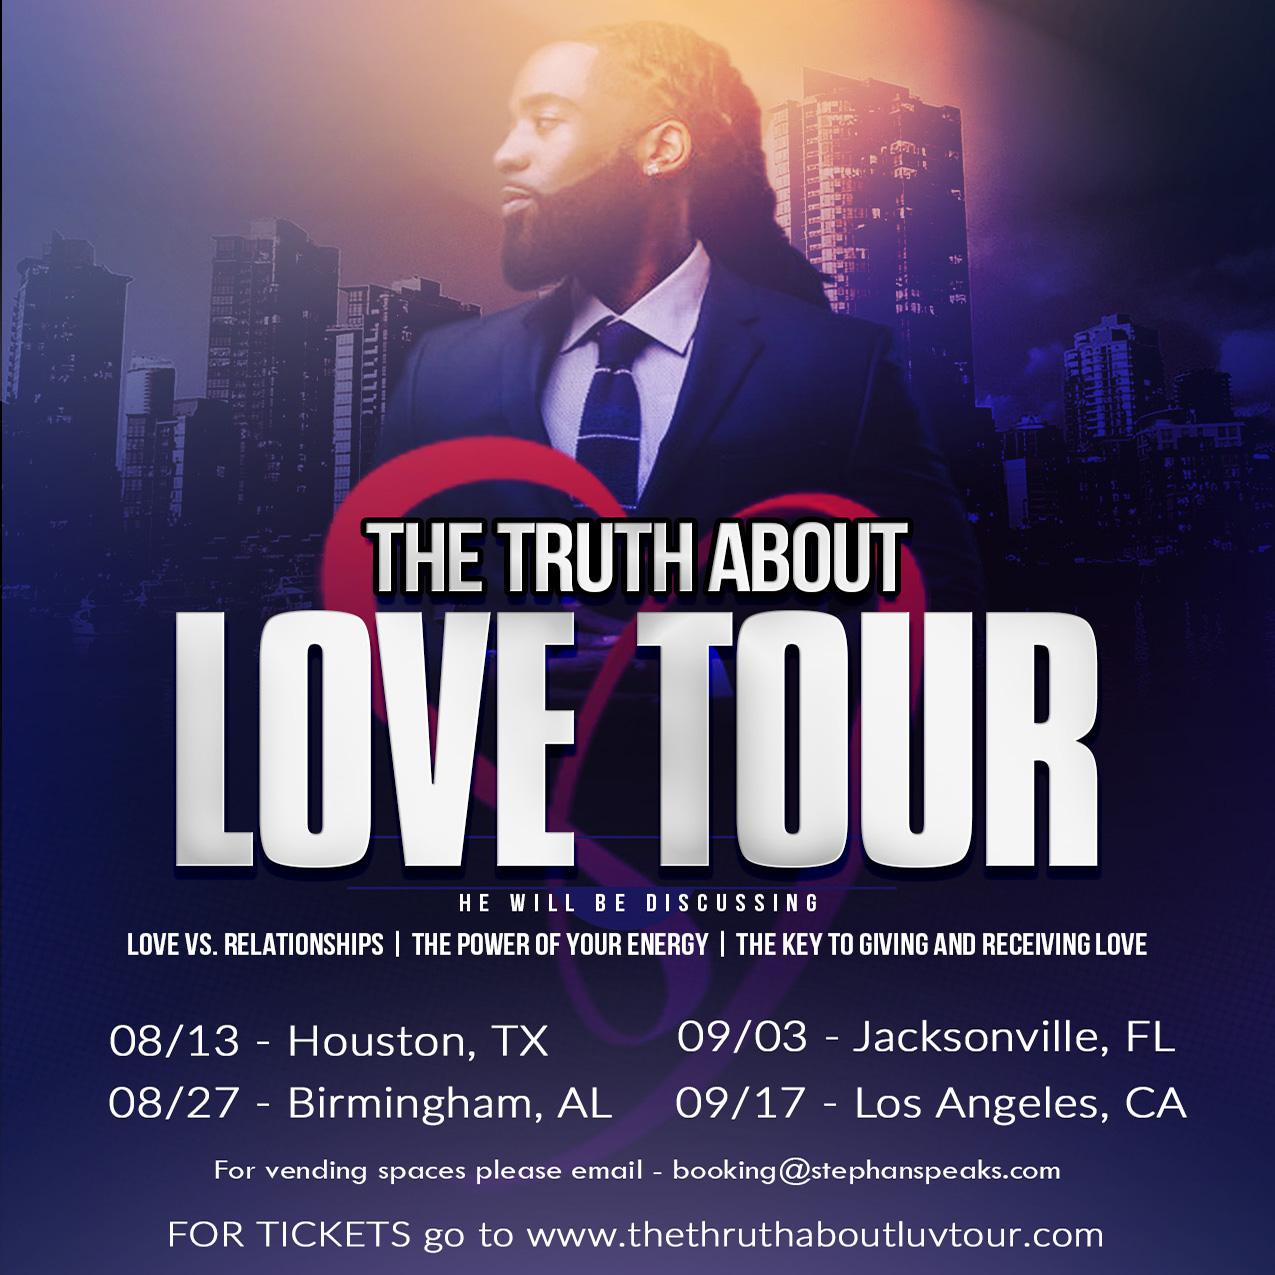 The Truth About Love Tour - Memphis, TN